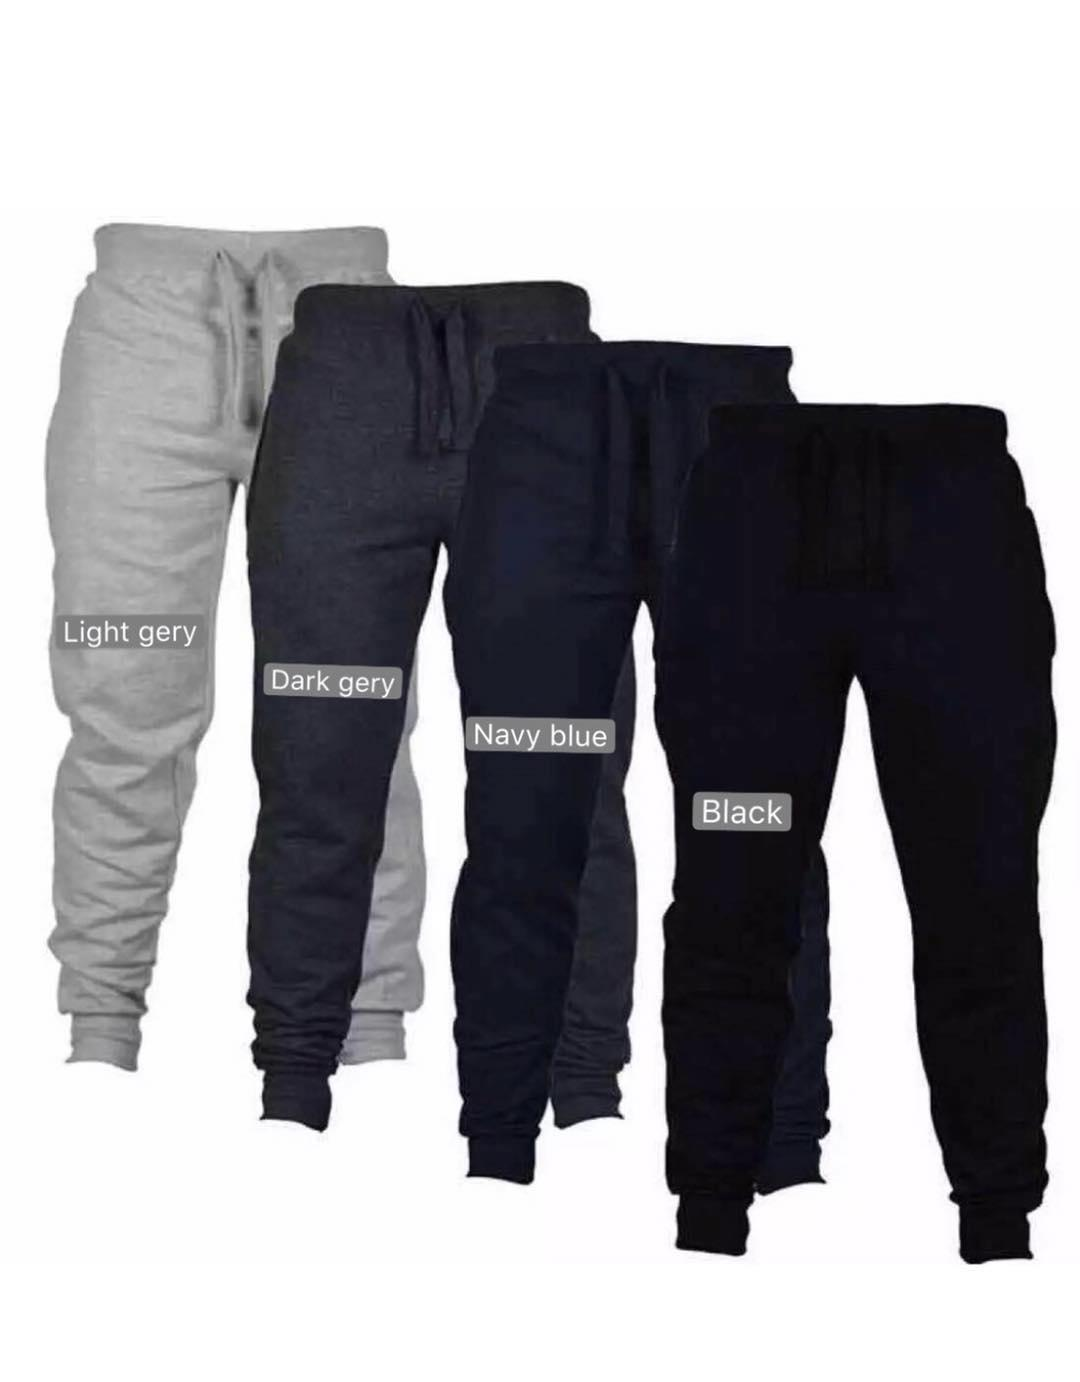 ac730b741853c9 Sweatpants for Men for sale - Joggers for Men online brands, prices ...